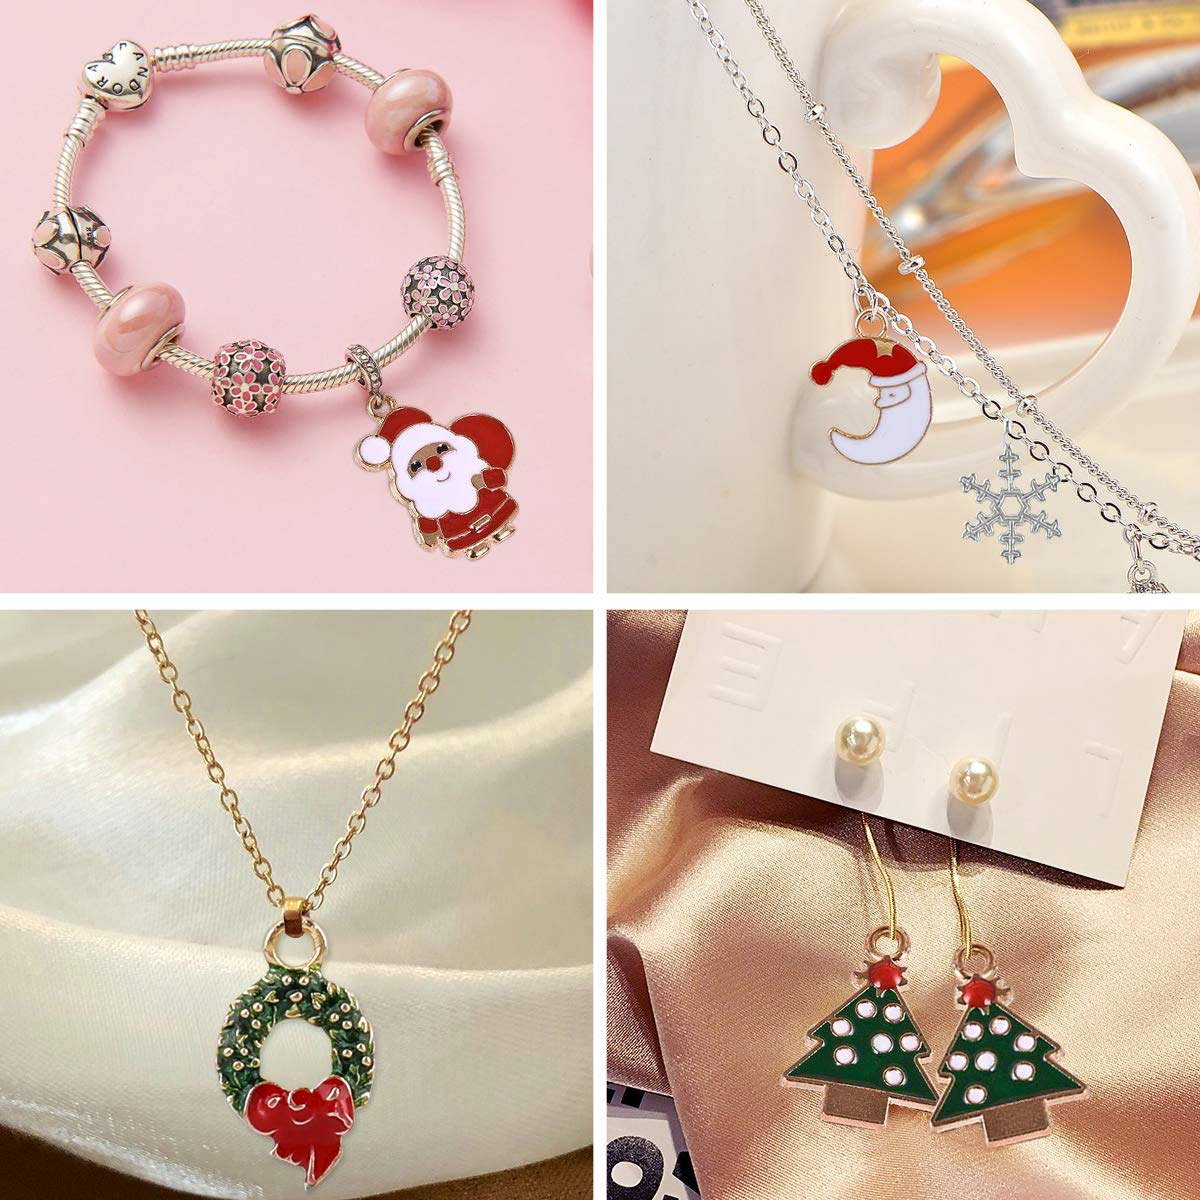 PHOGARY 50Pcs Christmas Charms for Jewelry Making Gold Plated Enamel Xmas Pendants for Necklace Bracelet DIY Crafting Bag Sweat Cloth Decoration